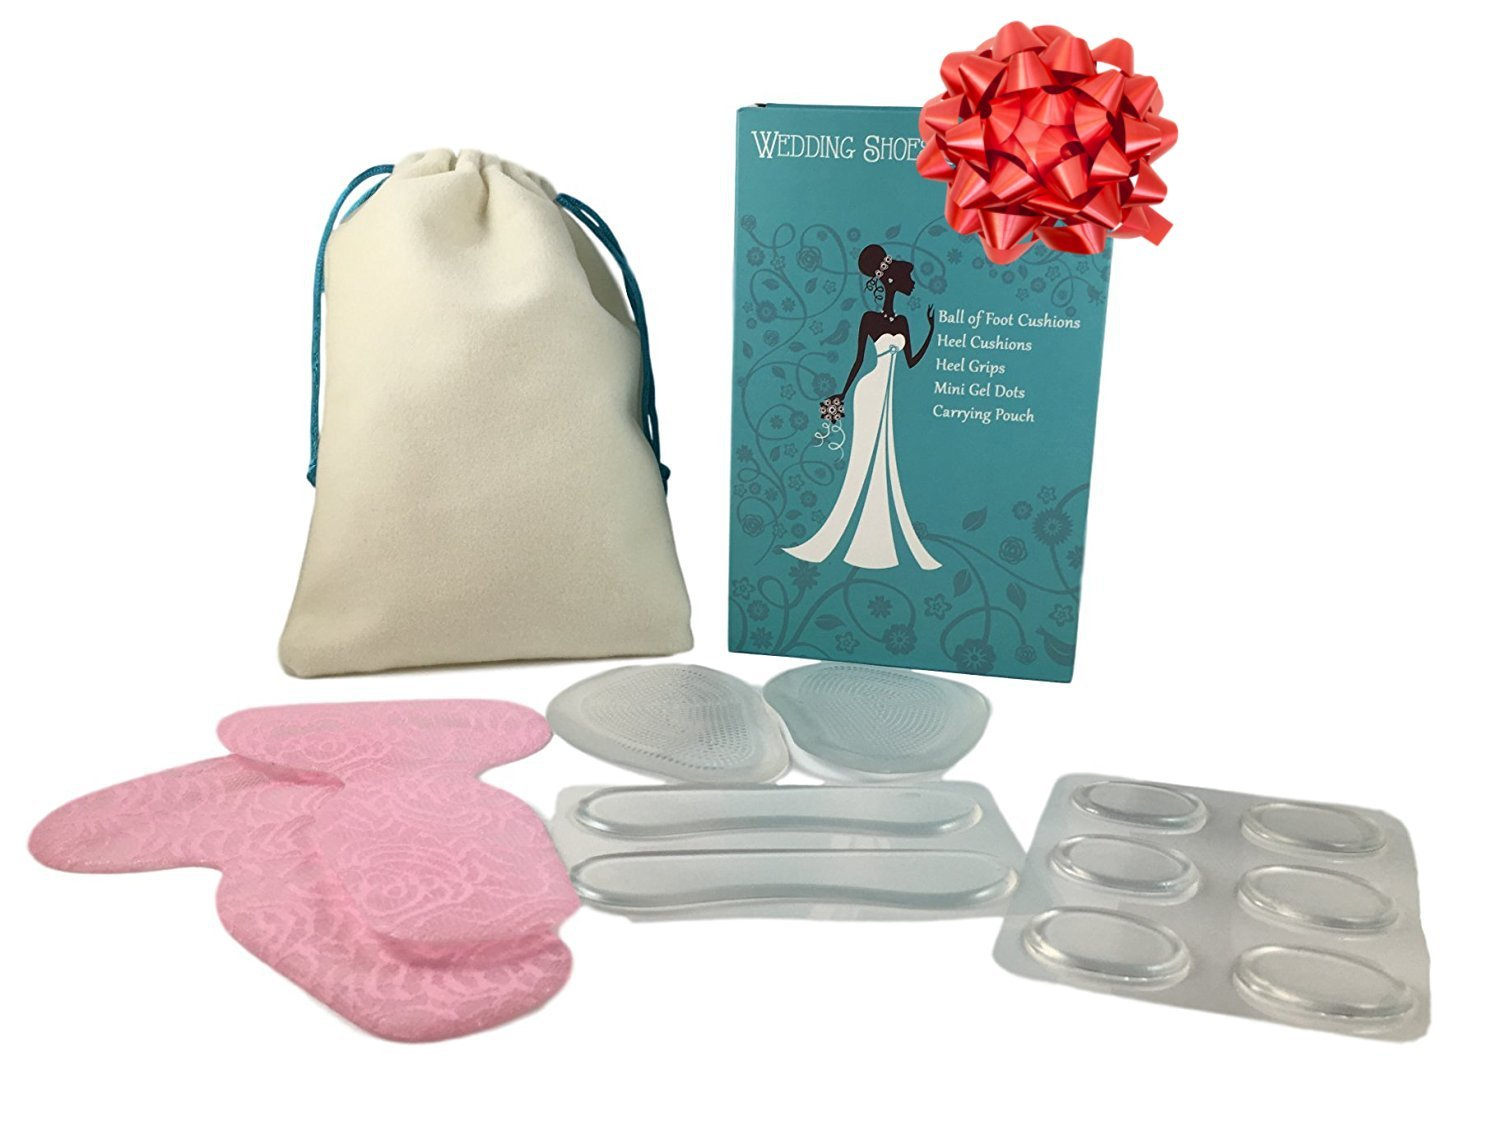 Wedding Day Survival Kit for Bridal Shoes - Perfect Gifts for the Bride, Maid of Honor, and Bridesmaids